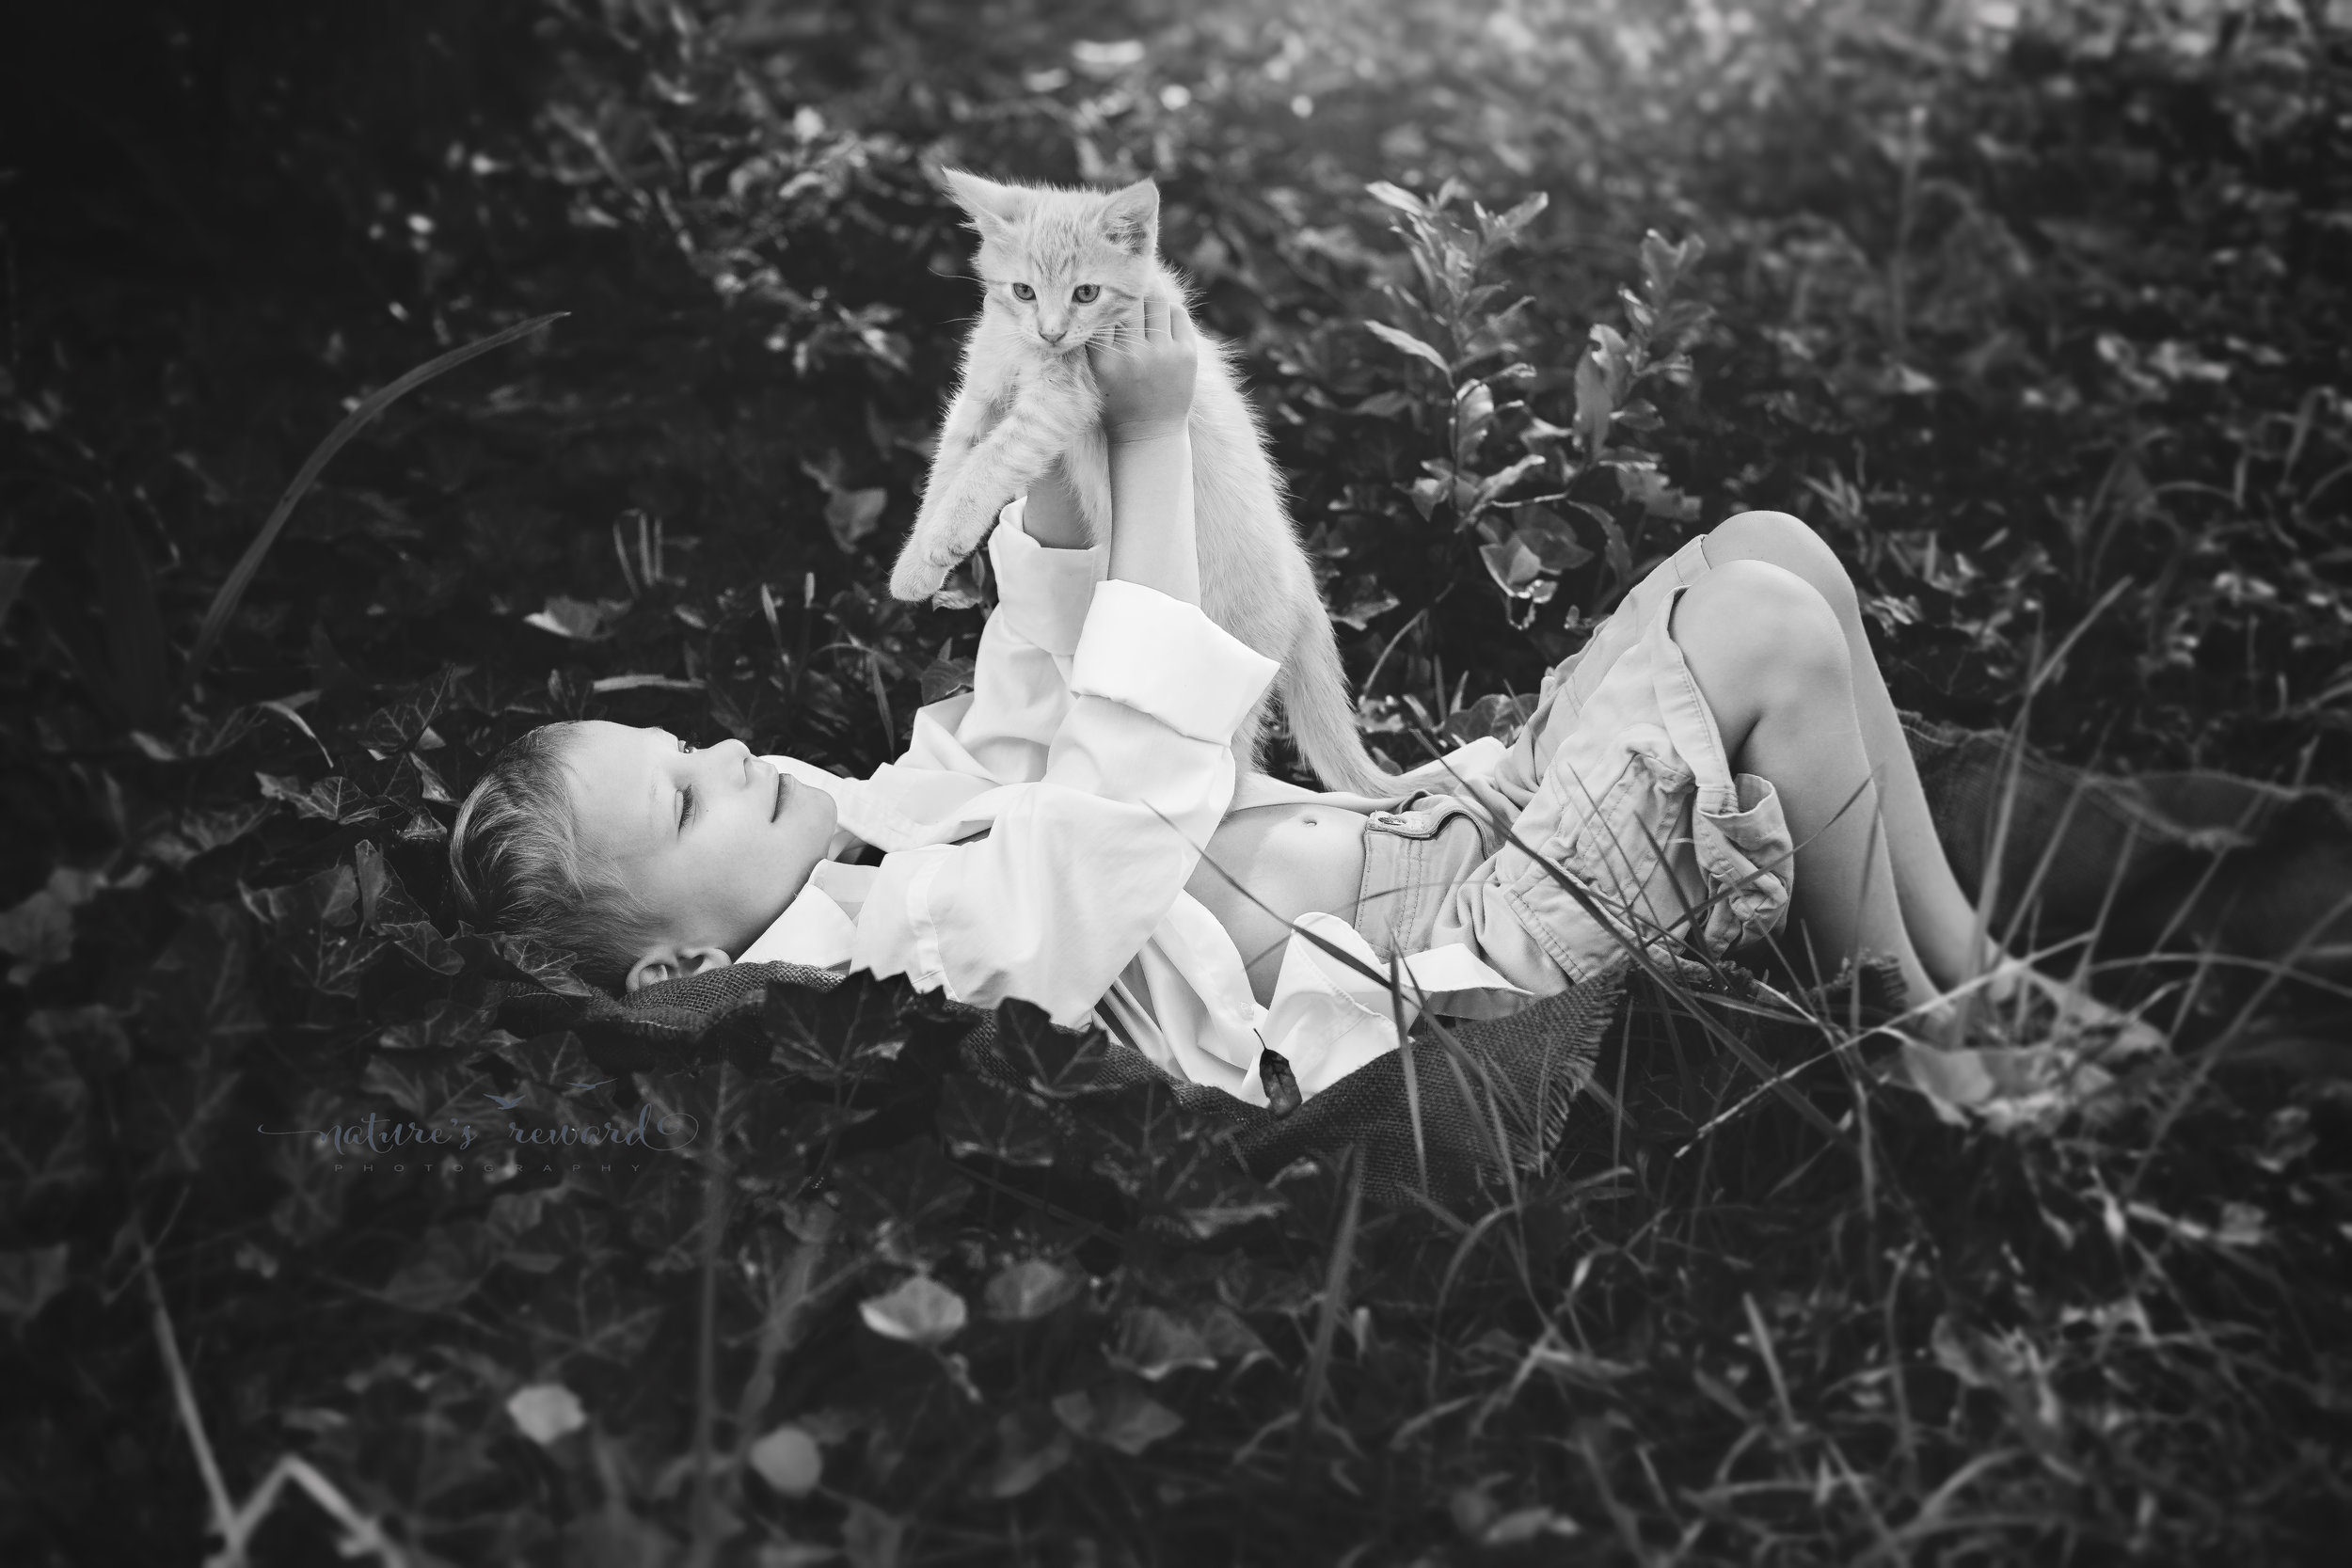 And then Caden lifted him into the air and presented the orange cat as if he too would be lion king and named Simba. With the light shining on them and the ivy brilliant in it its texture and fullness this image screams to me in black and white.